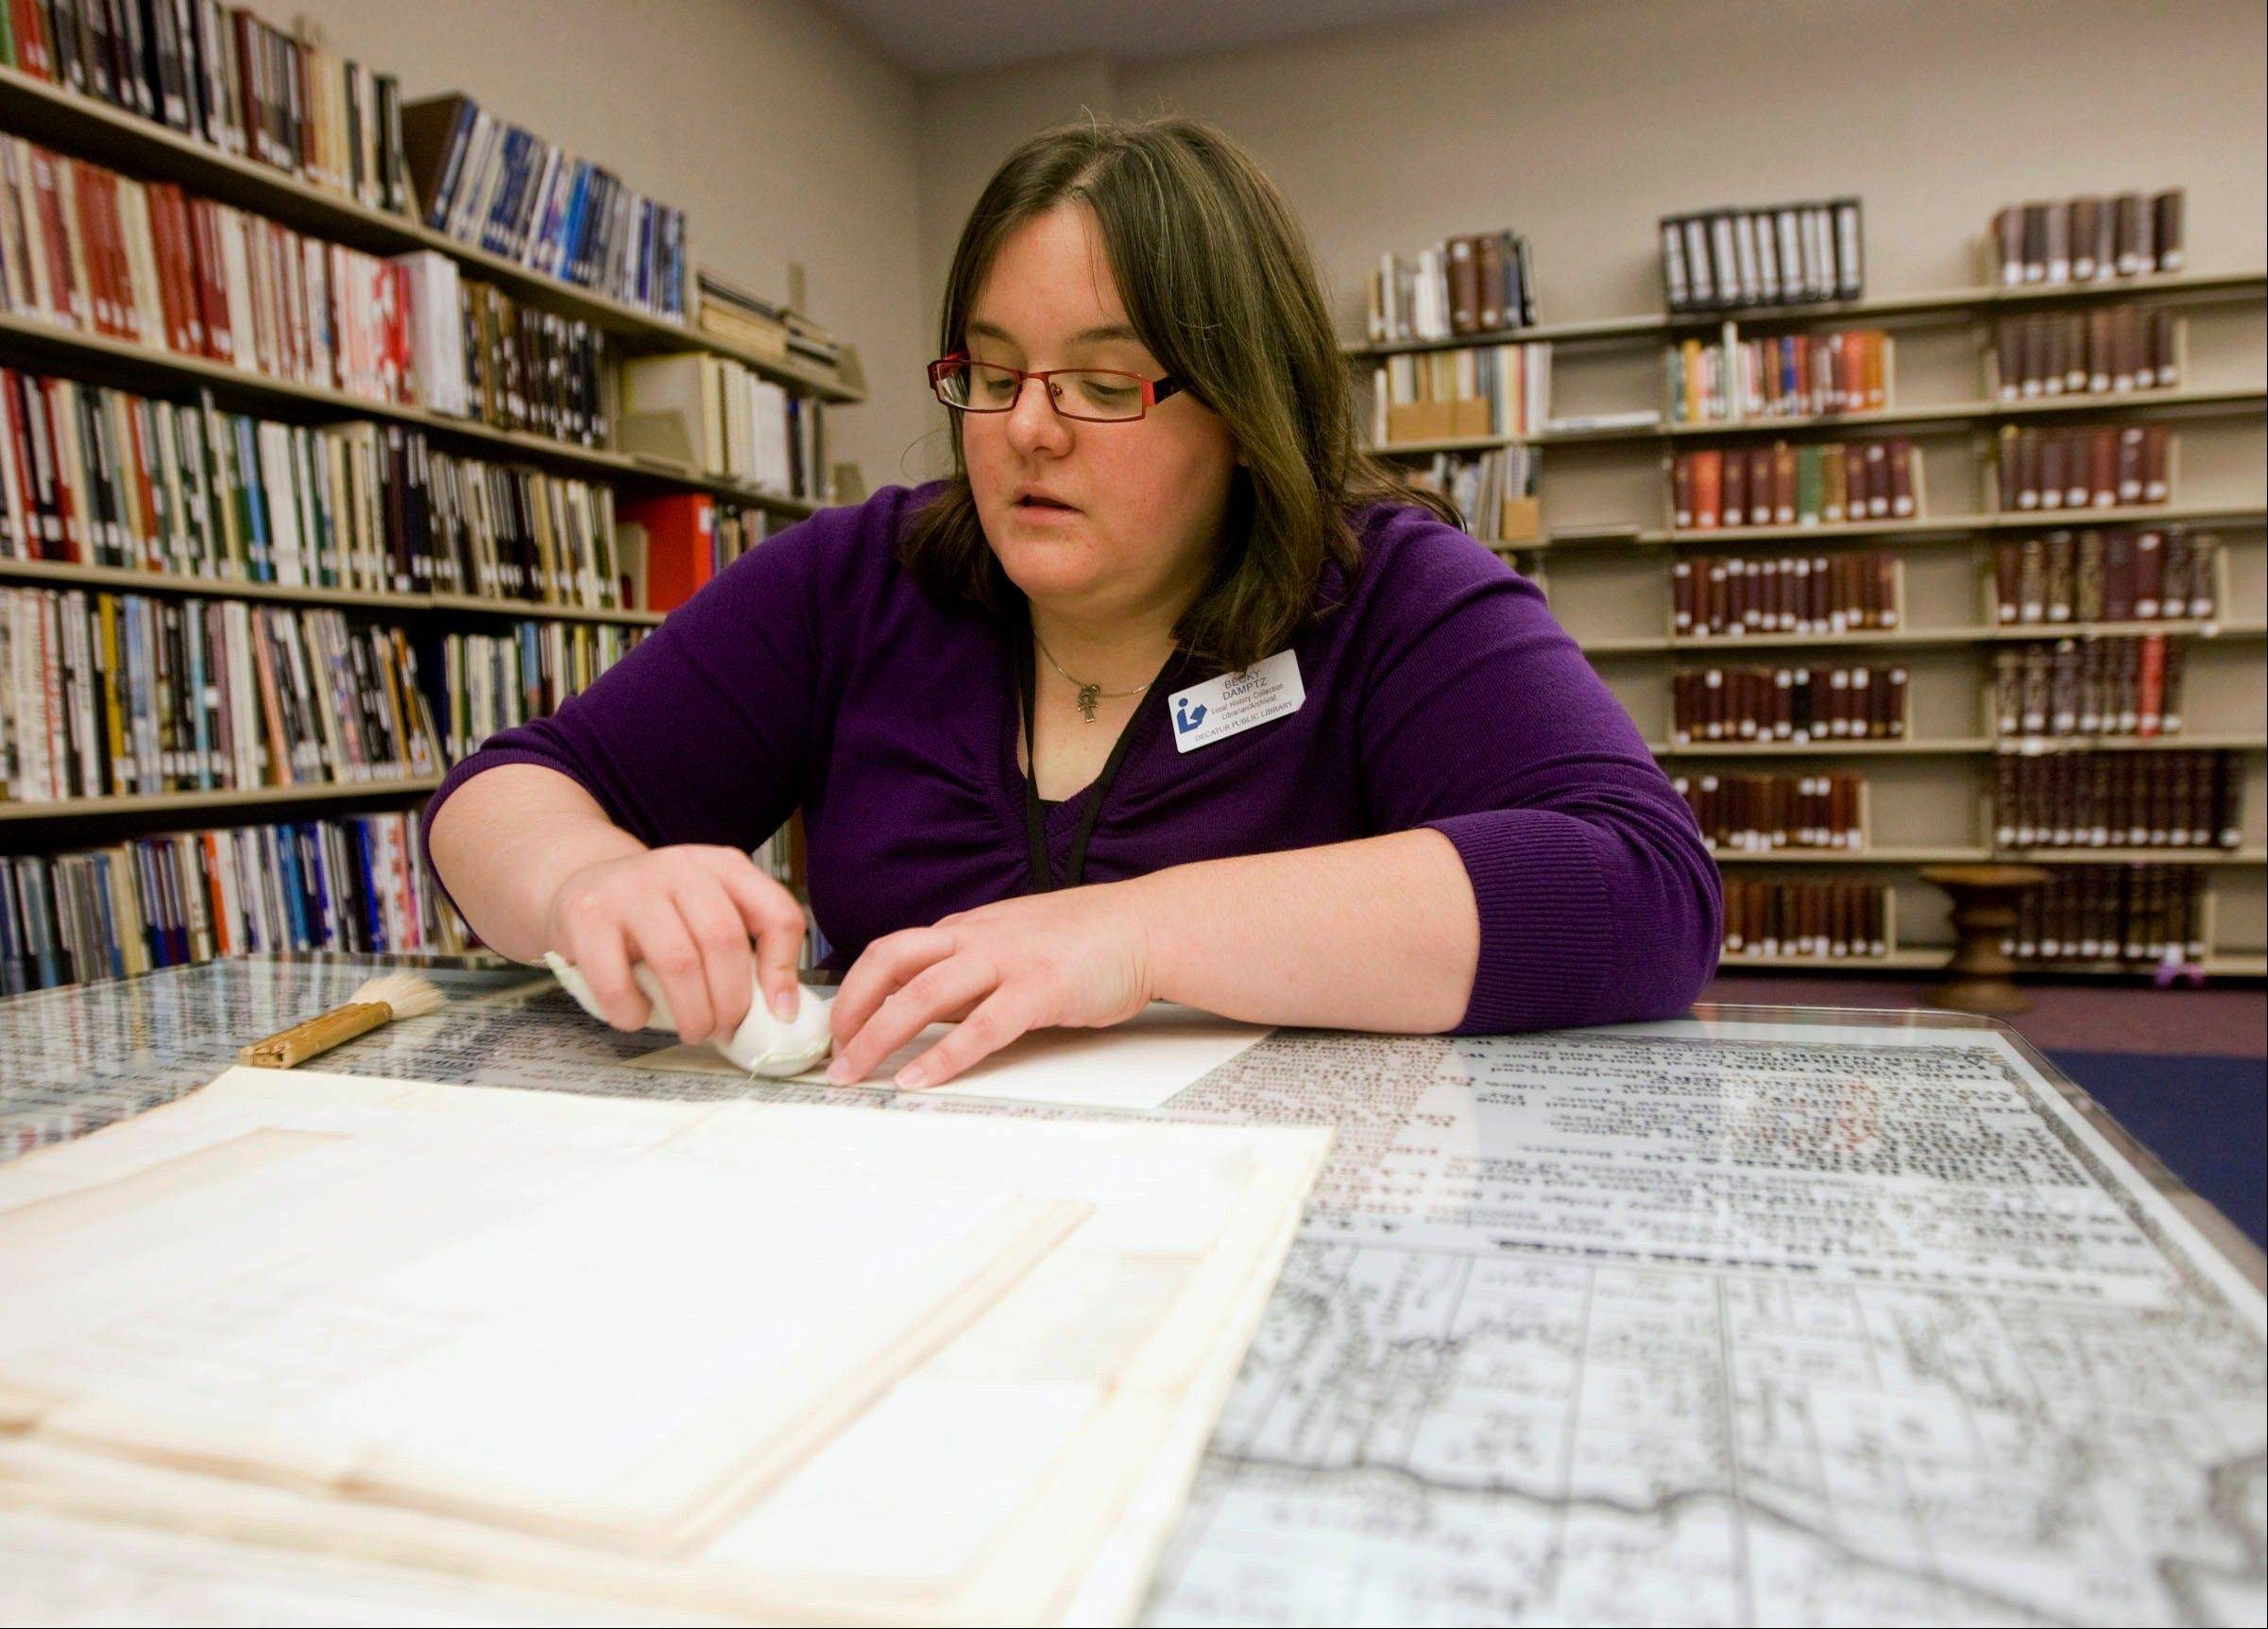 Rebecca Damptz, local history librarian/archivist at the Decatur Public Library, cleans an old document in Decatur.